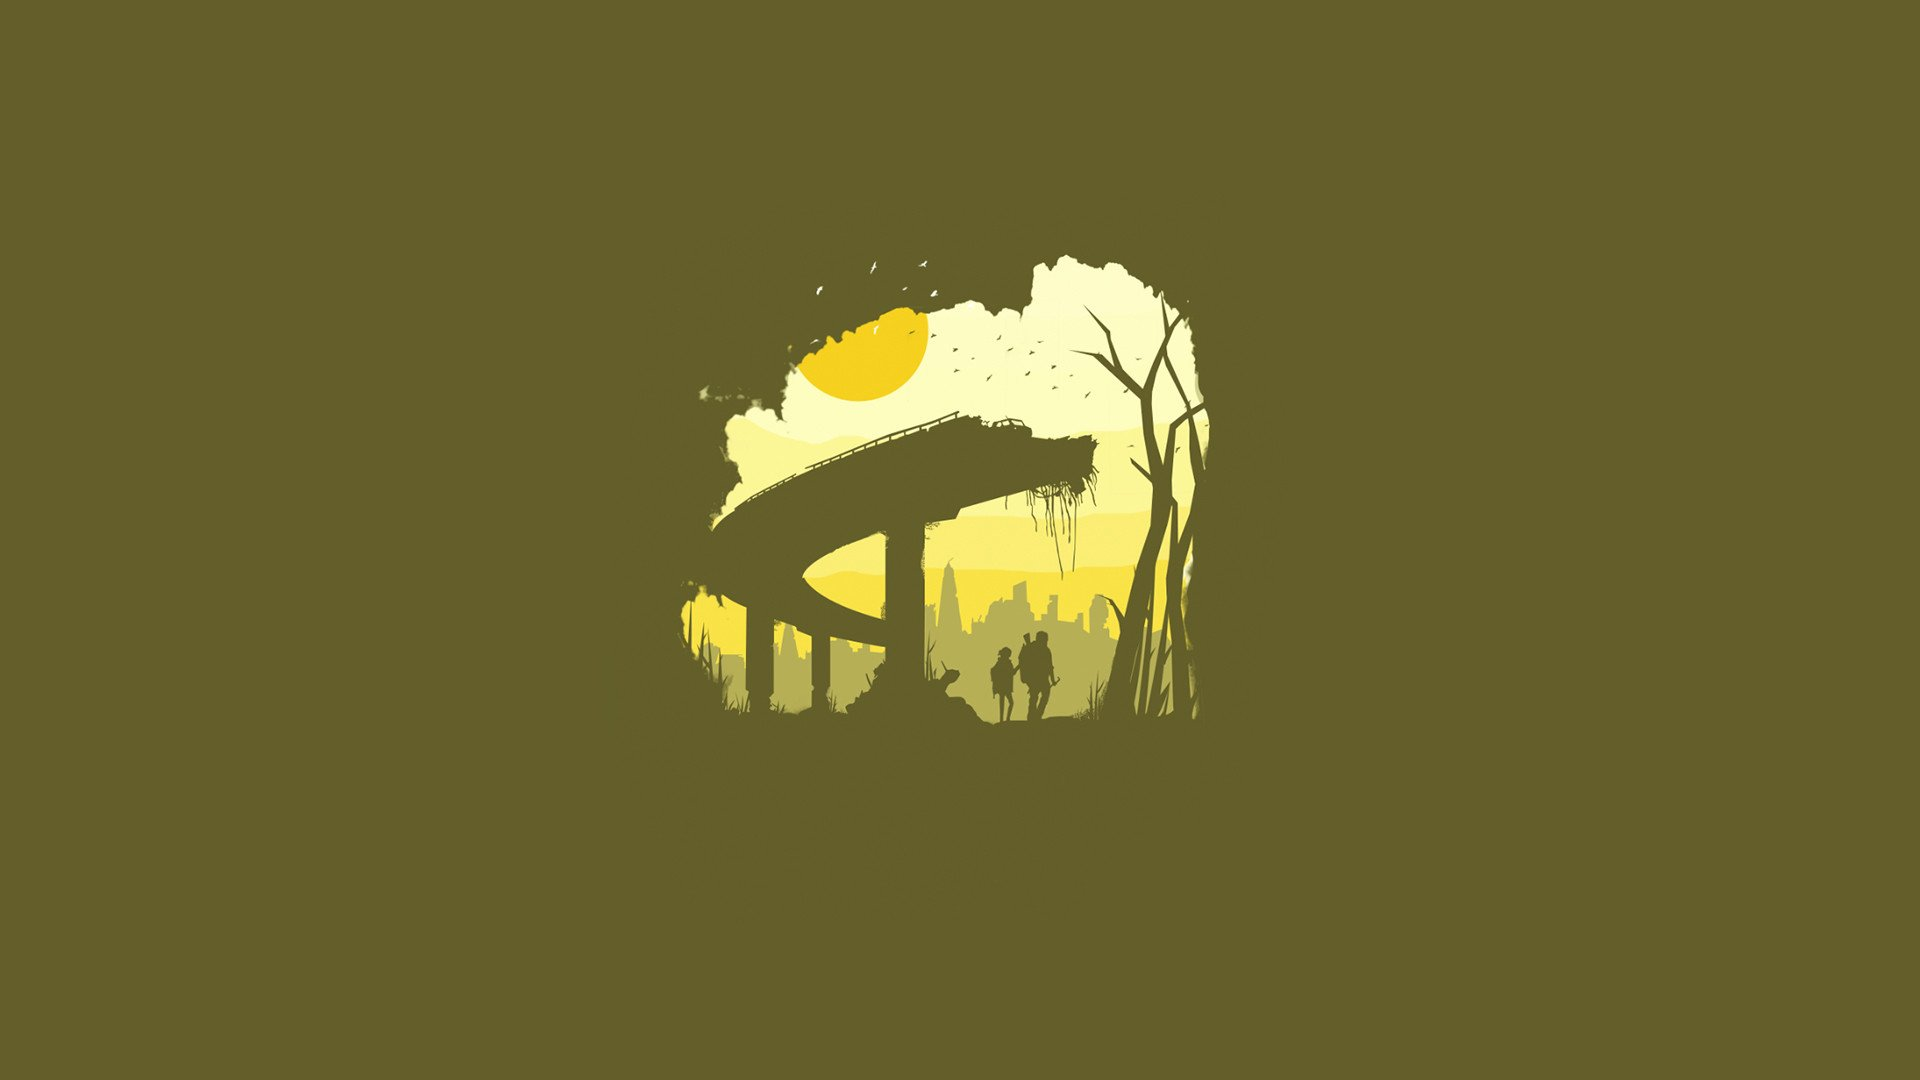 Minimalist Last Of Us Wallpaper